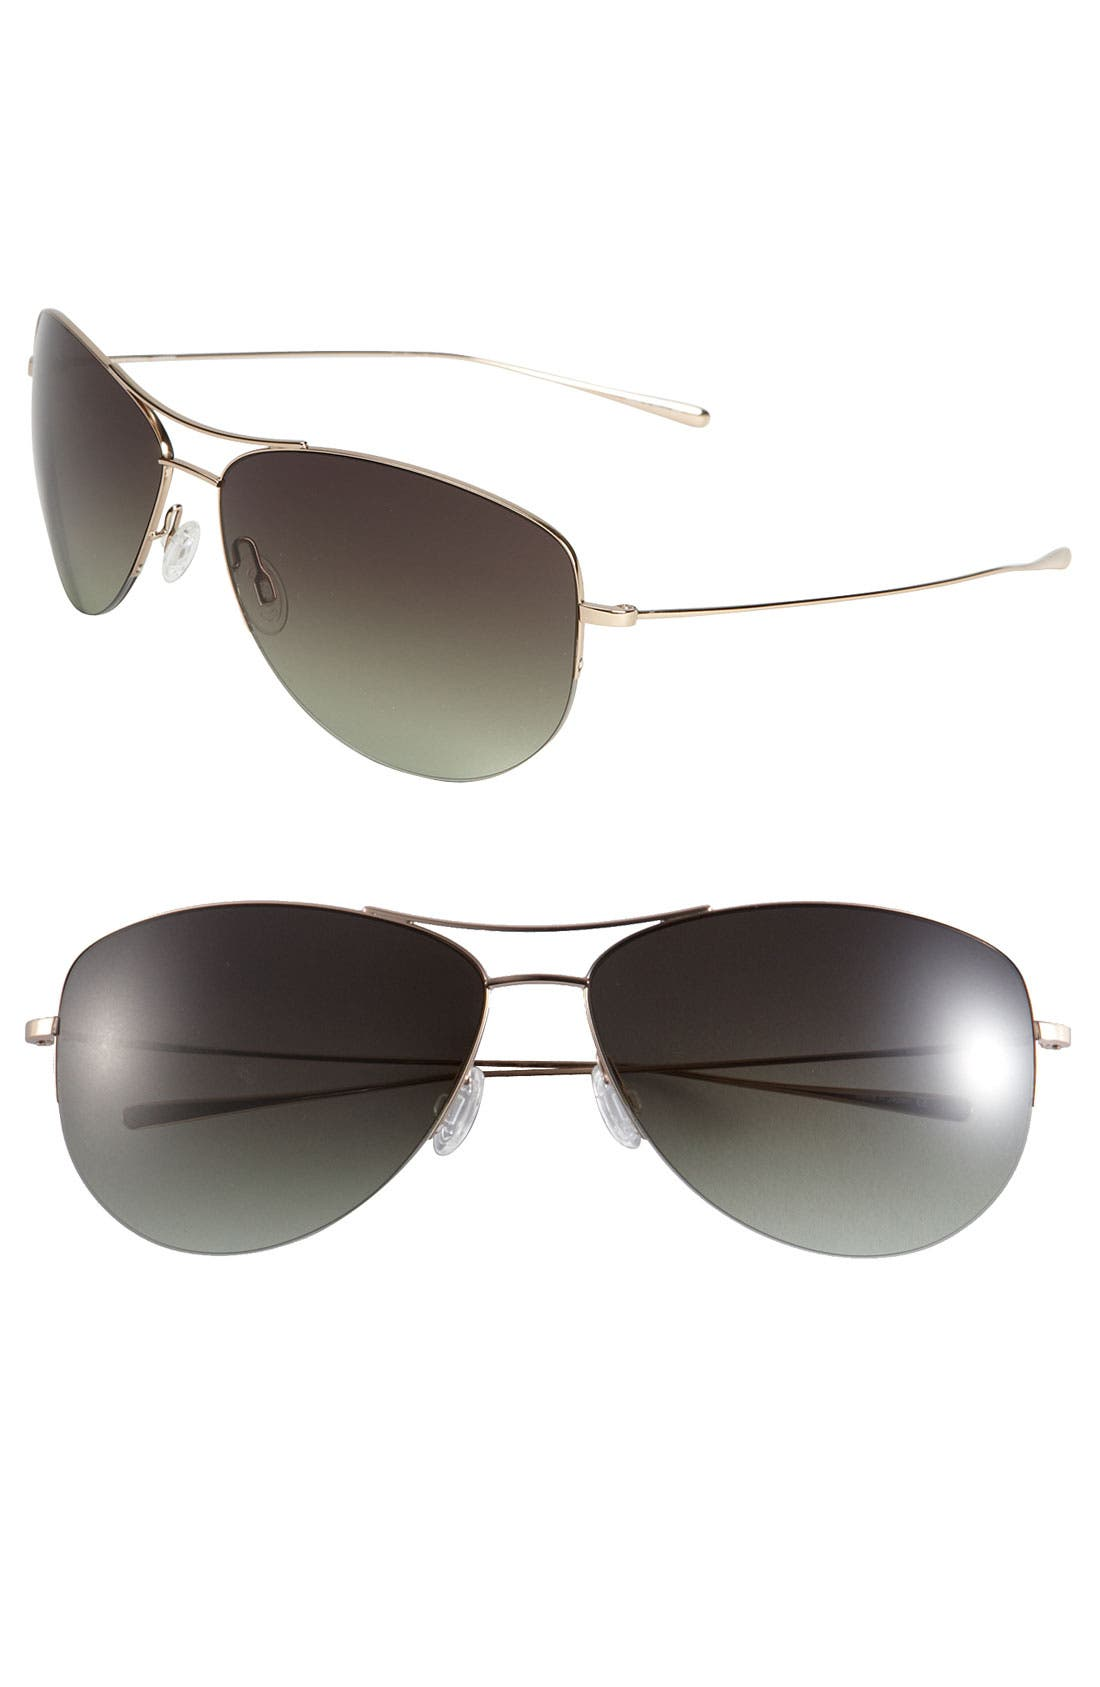 Main Image - Oliver Peoples 'Strummer' 63mm Metal Aviator Sunglasses